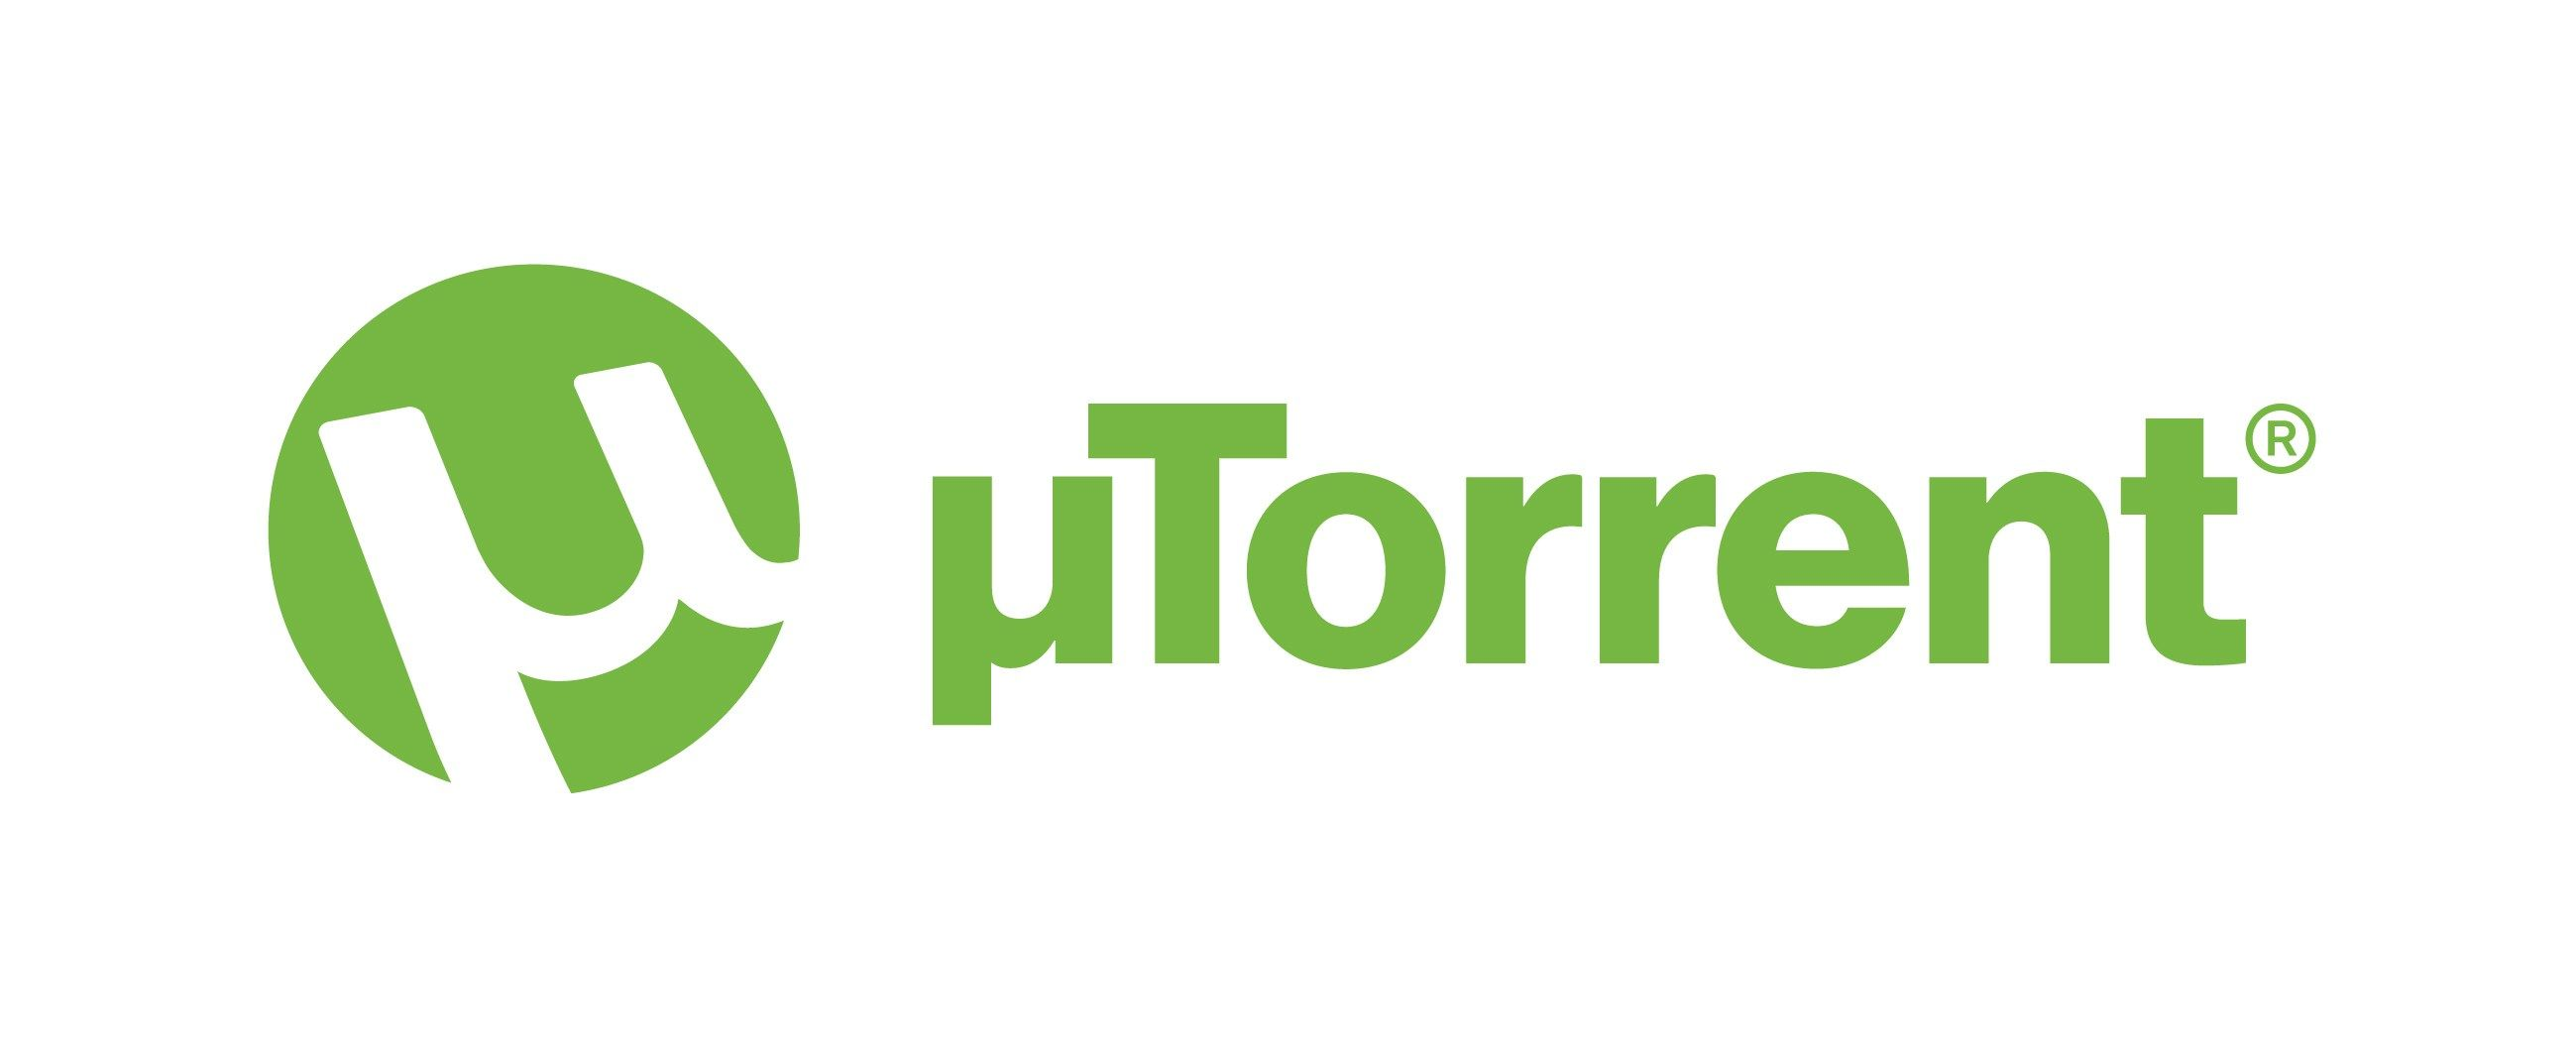 free download utorrent app for android